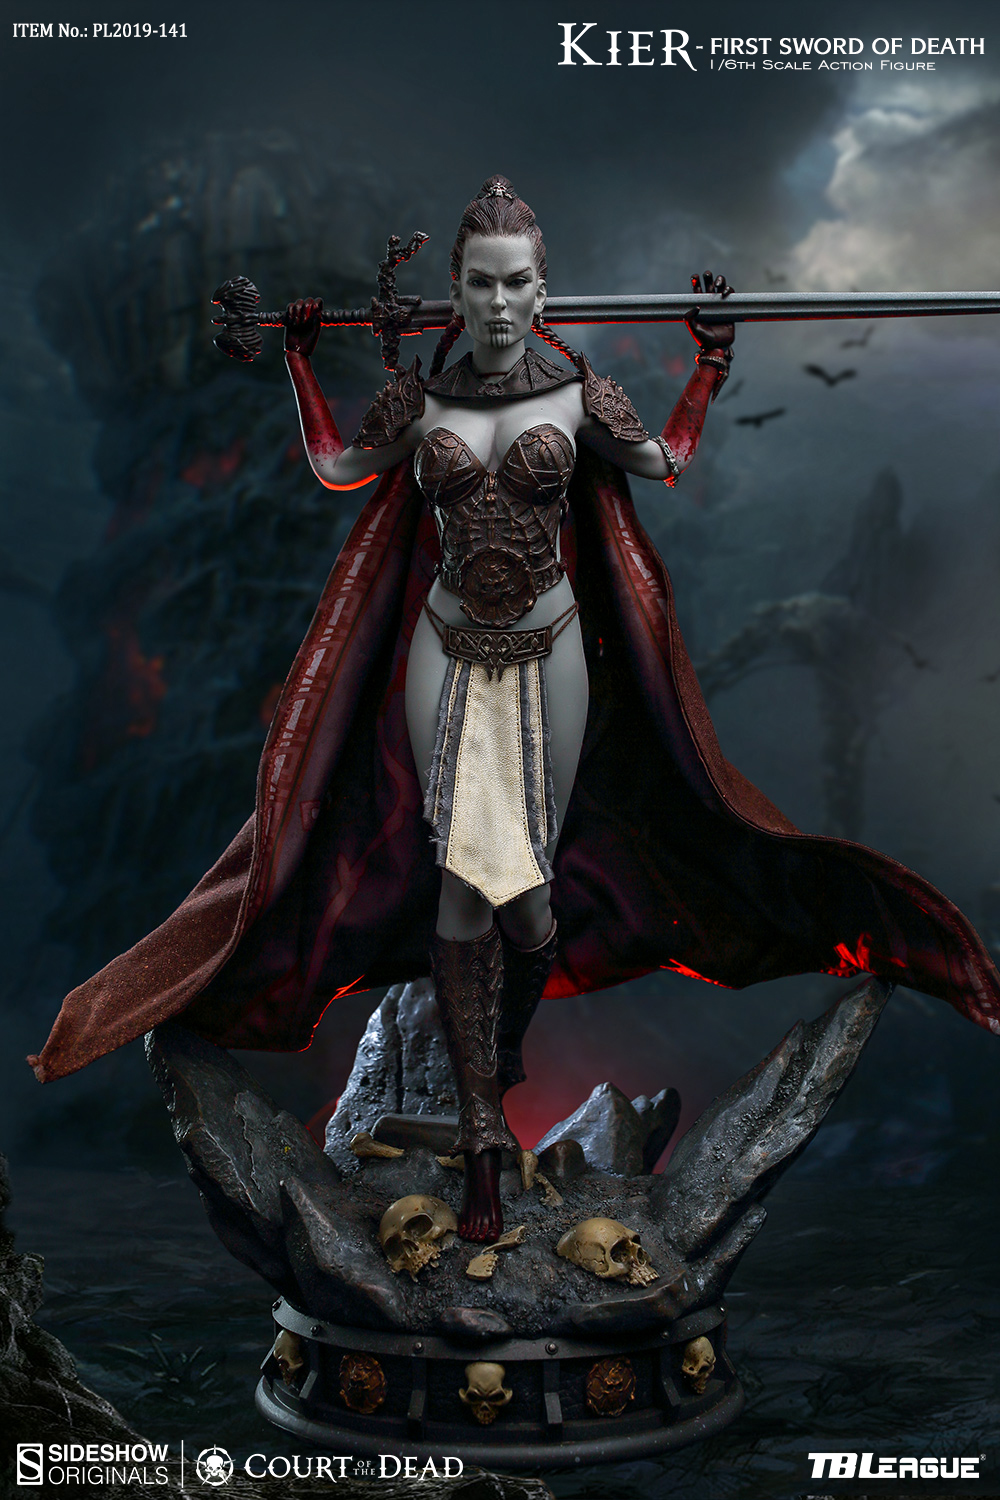 tbleague - NEW PRODUCT: TBLeague & Sideshow: 1/6 Court of the Dead - Valkyrie Cole / Kier movable doll (PL2019-141) 16260410